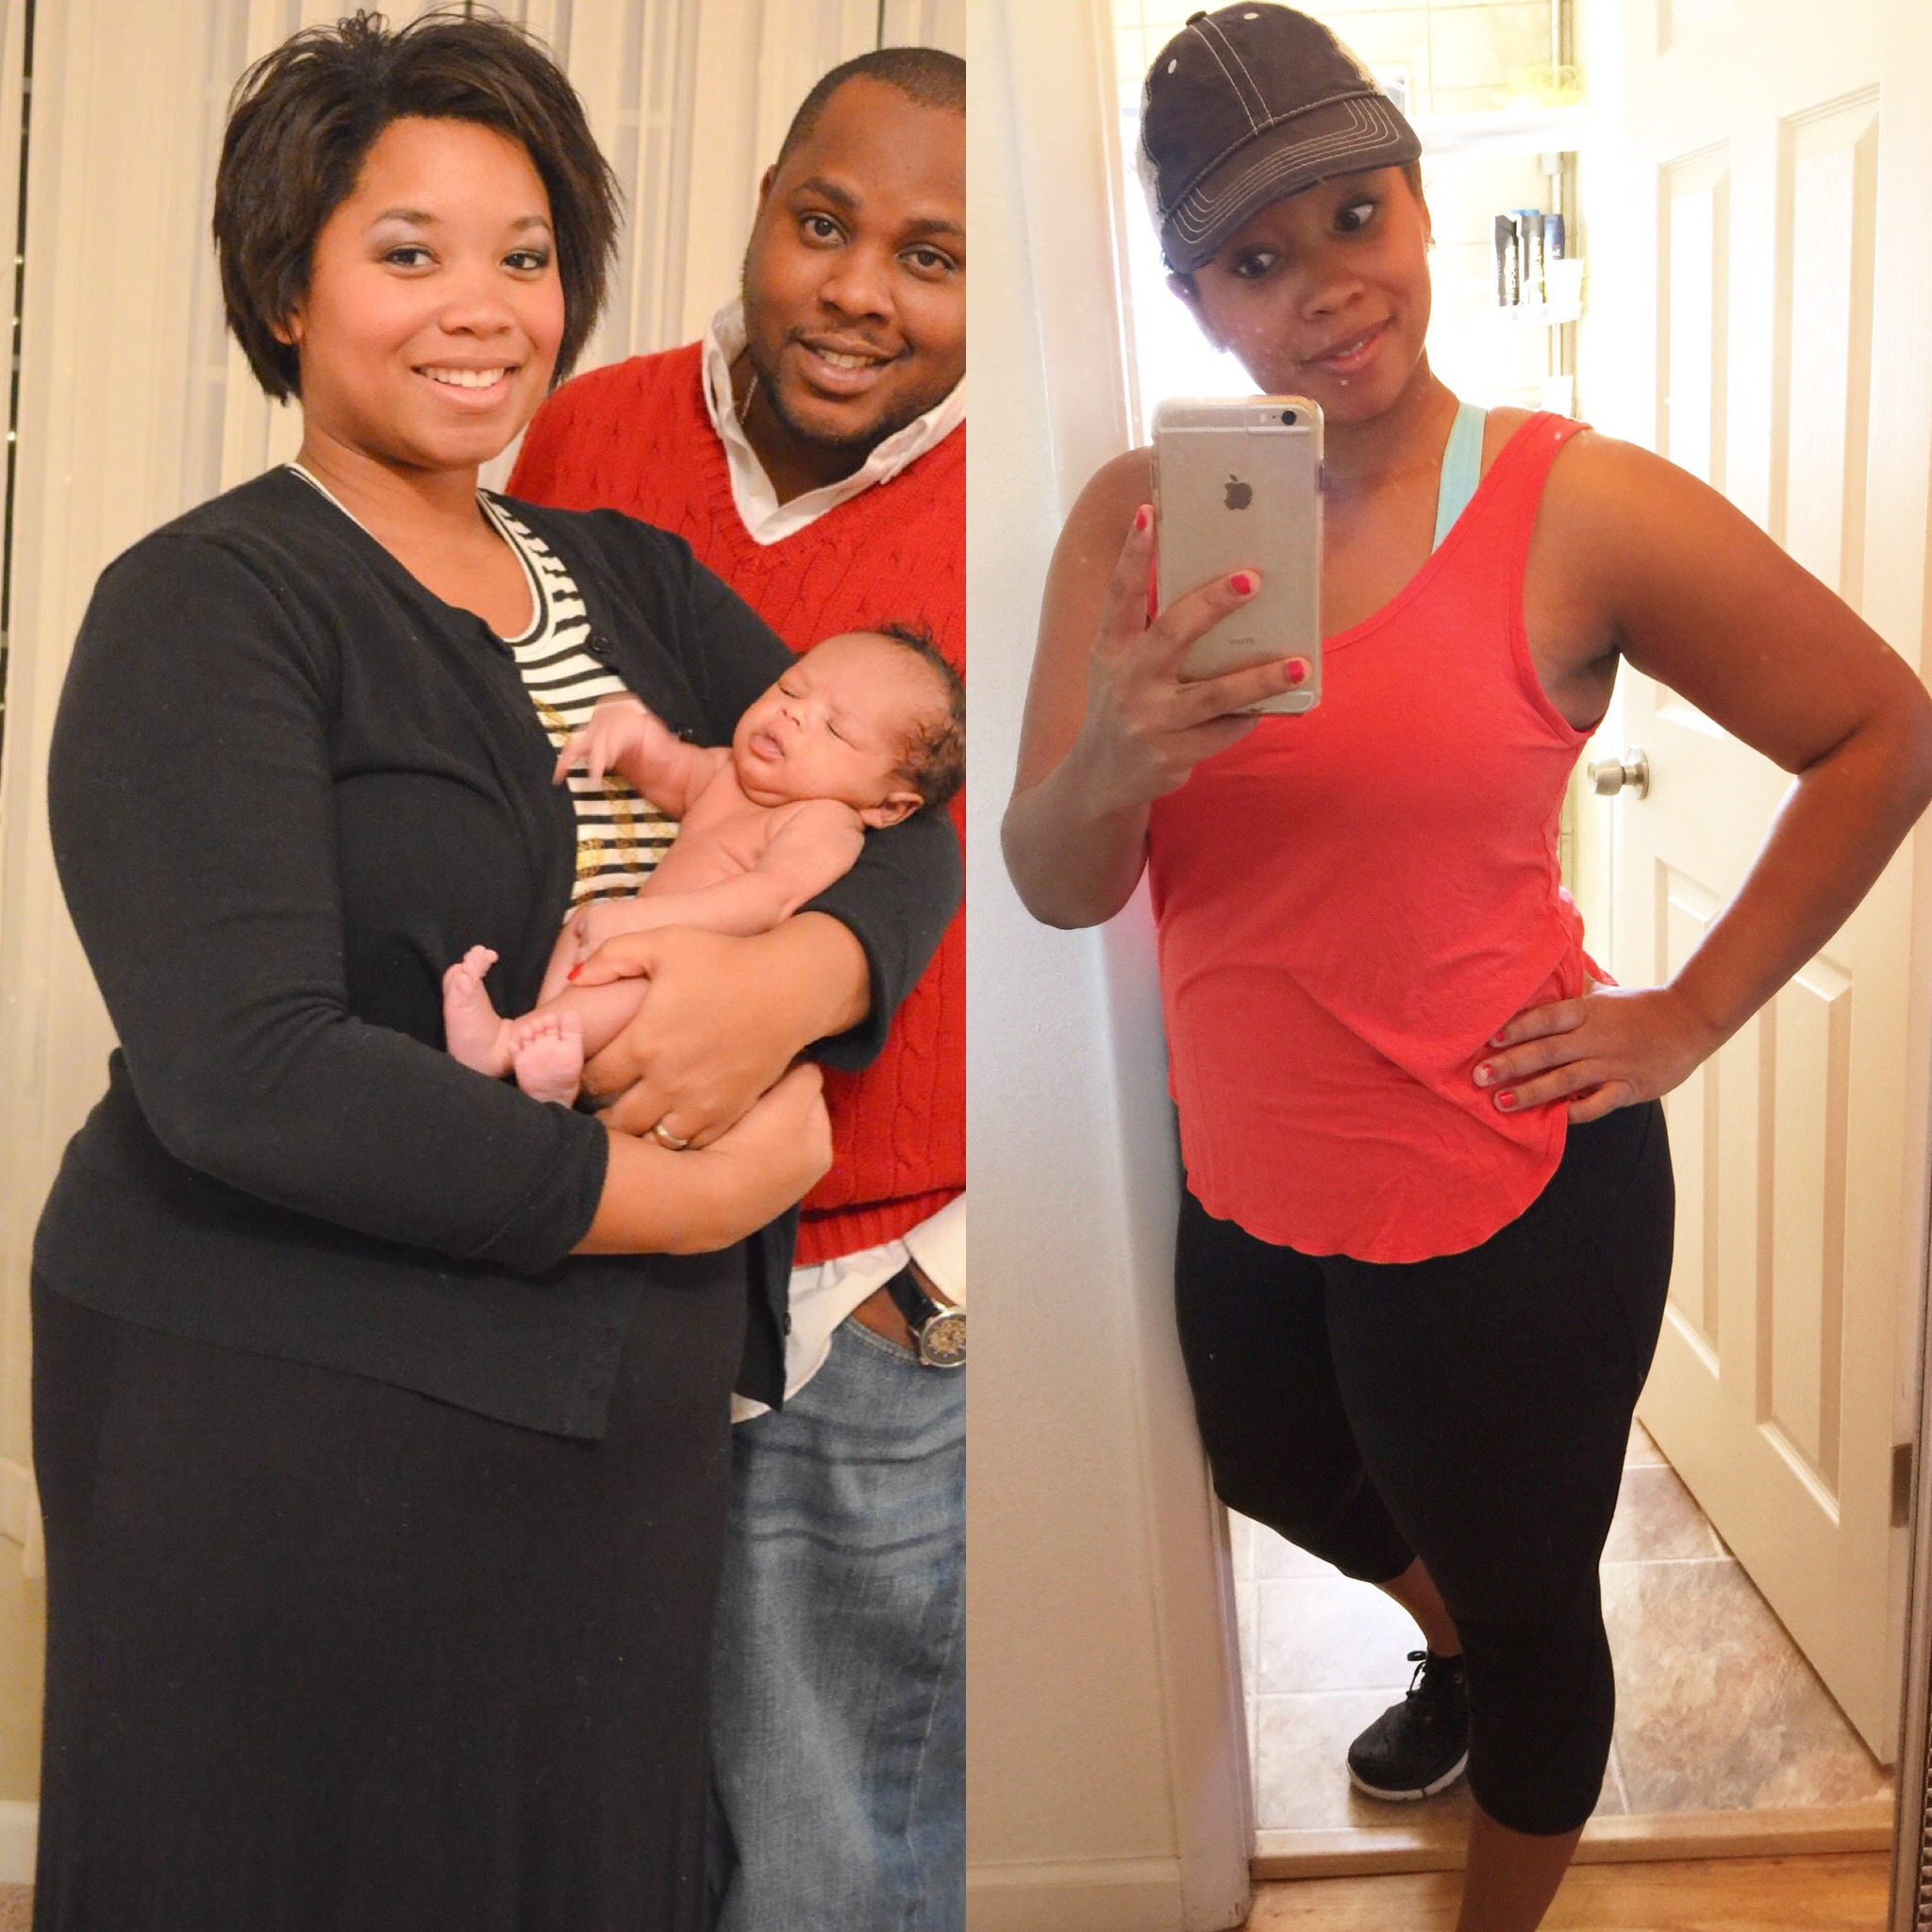 Great success story! Read before and after fitness transformation stories from women and men who hit weight loss goals and got THAT BODY with training and meal prep. Find inspiration, motivation, and workout tips | Sister Circle Live: Young Mom of 4 Loses 60 Pounds